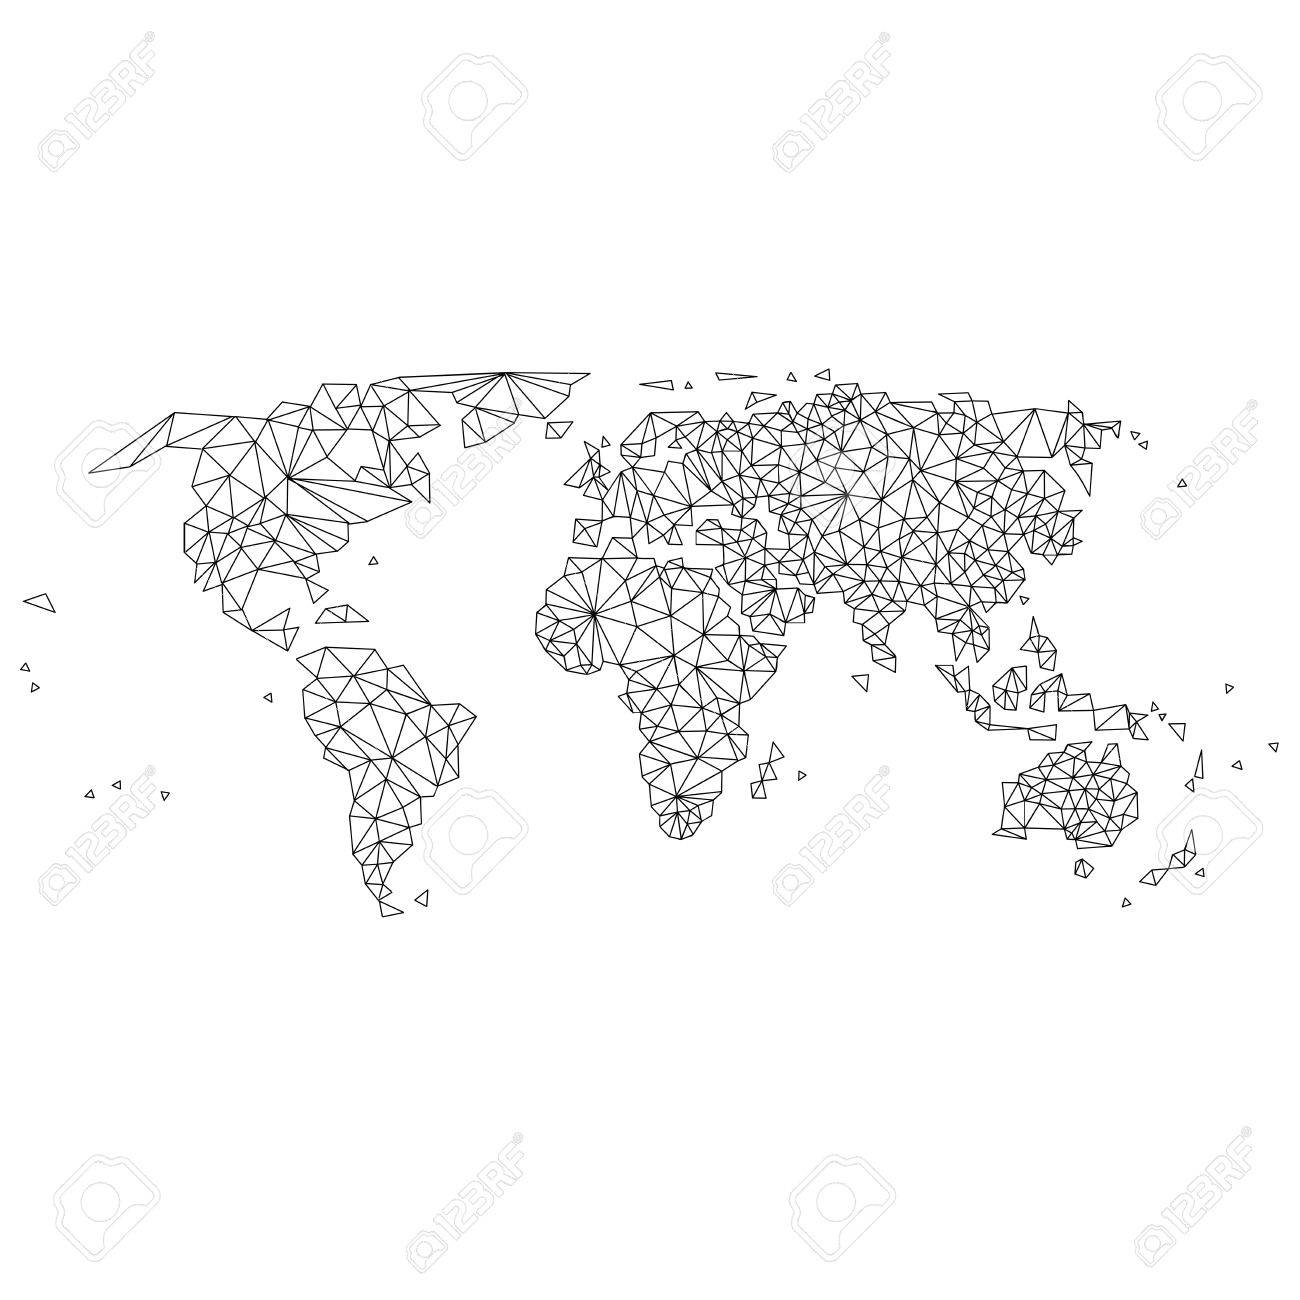 Abstract world map lines royalty free cliparts vectors and stock abstract world map lines stock vector 73885621 gumiabroncs Choice Image